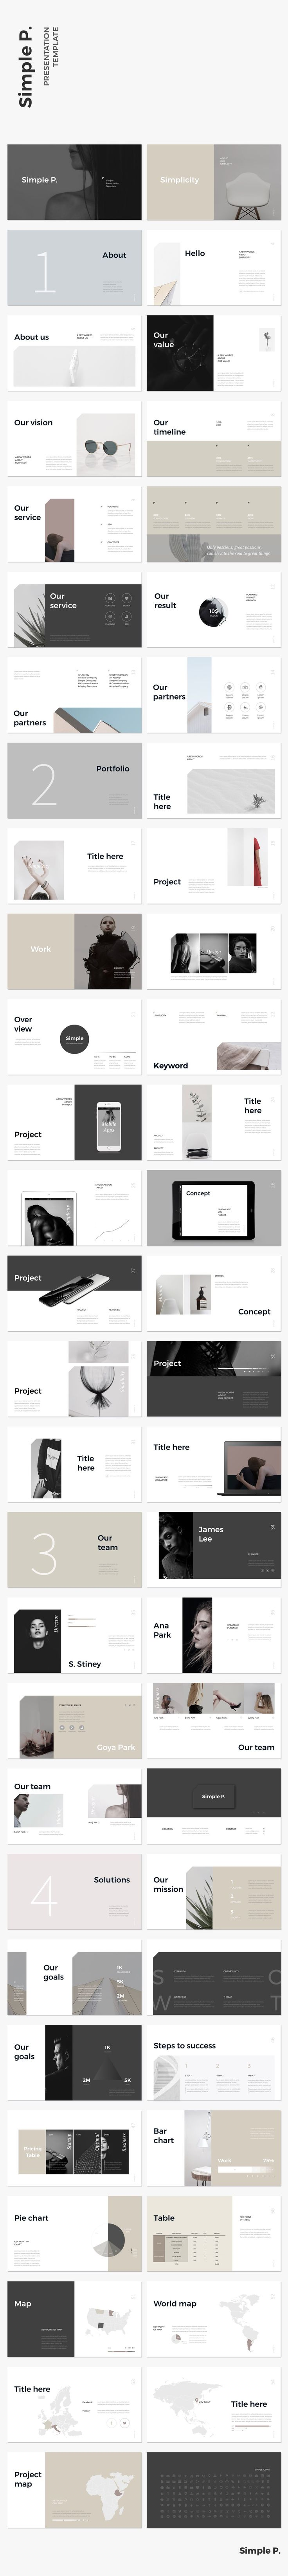 Best 25 pamphlet template ideas on pinterest pamphlet design simple p powerpoint template alramifo Choice Image